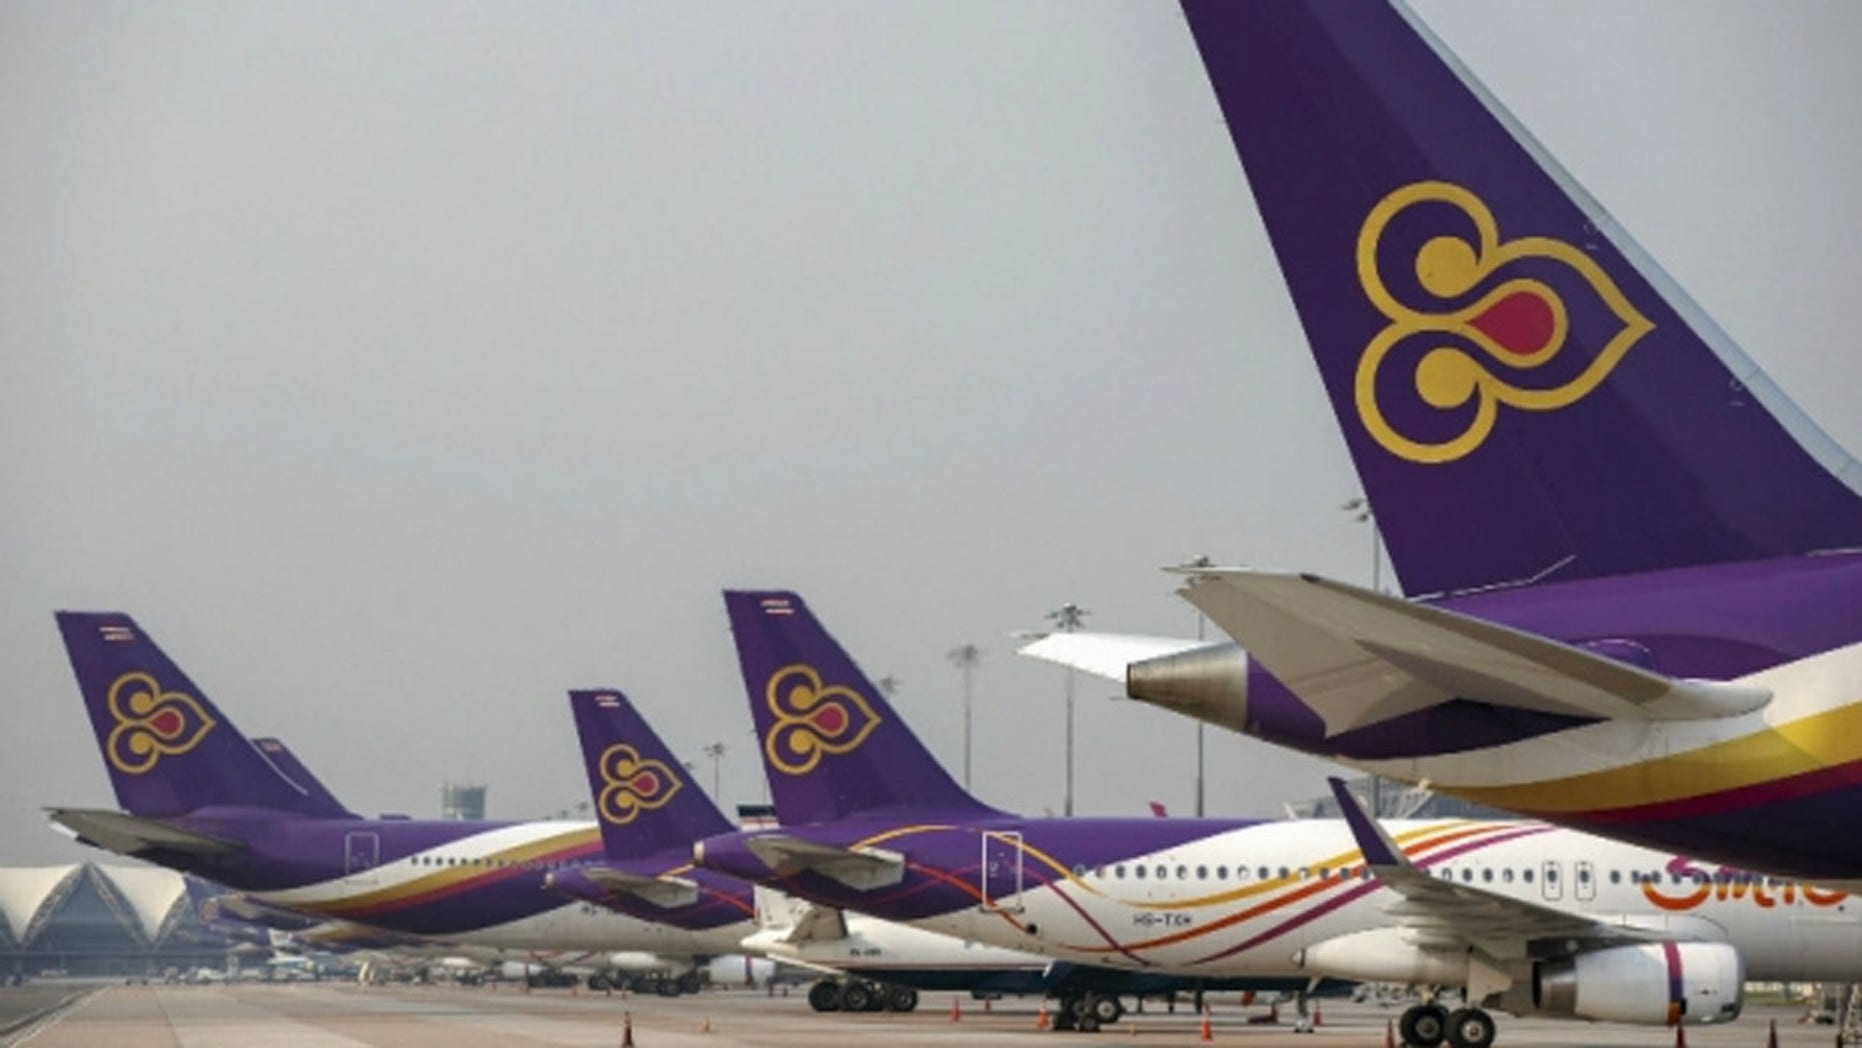 The low-cost Thai Smile Airlines, a subsidiary of Thai Airways, is selling child-seat tickets for Look Thep dolls.